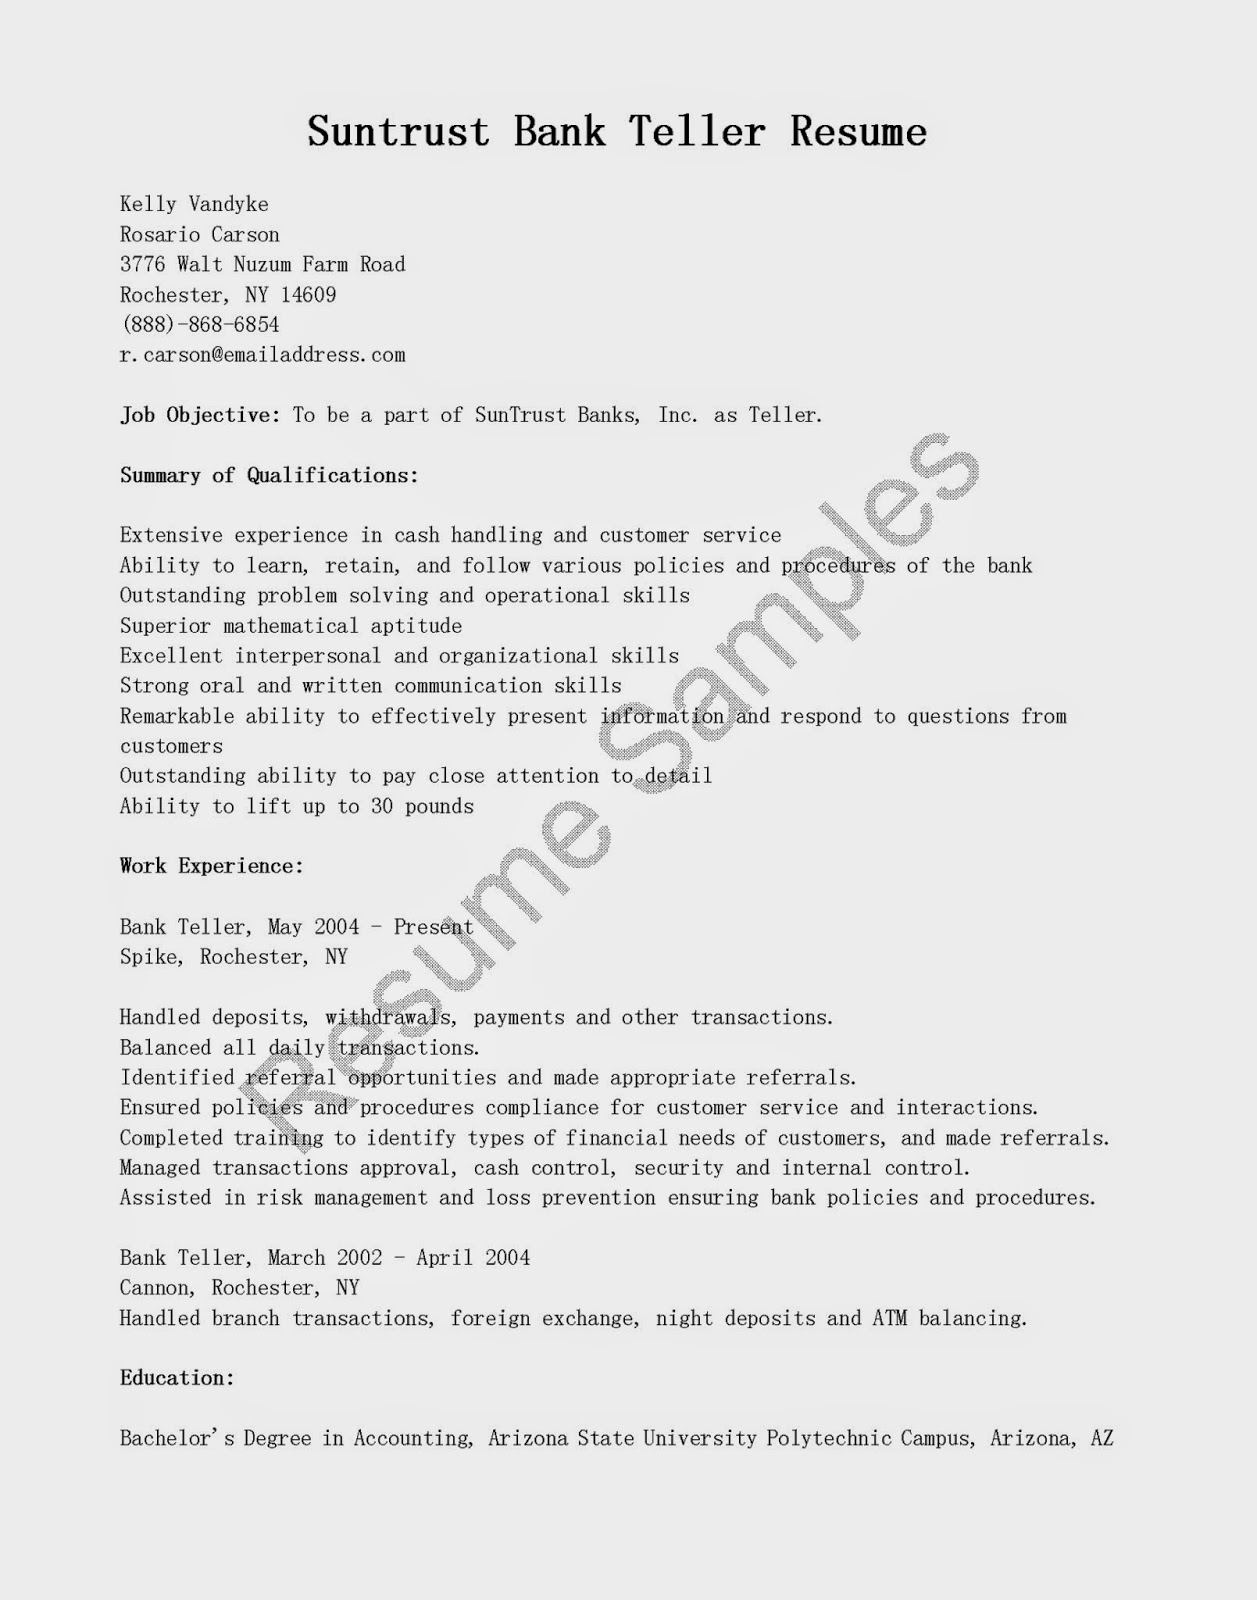 Office Manager Job Description Resume Warehouse Job Description Home Design Resume  CV Cover Leter